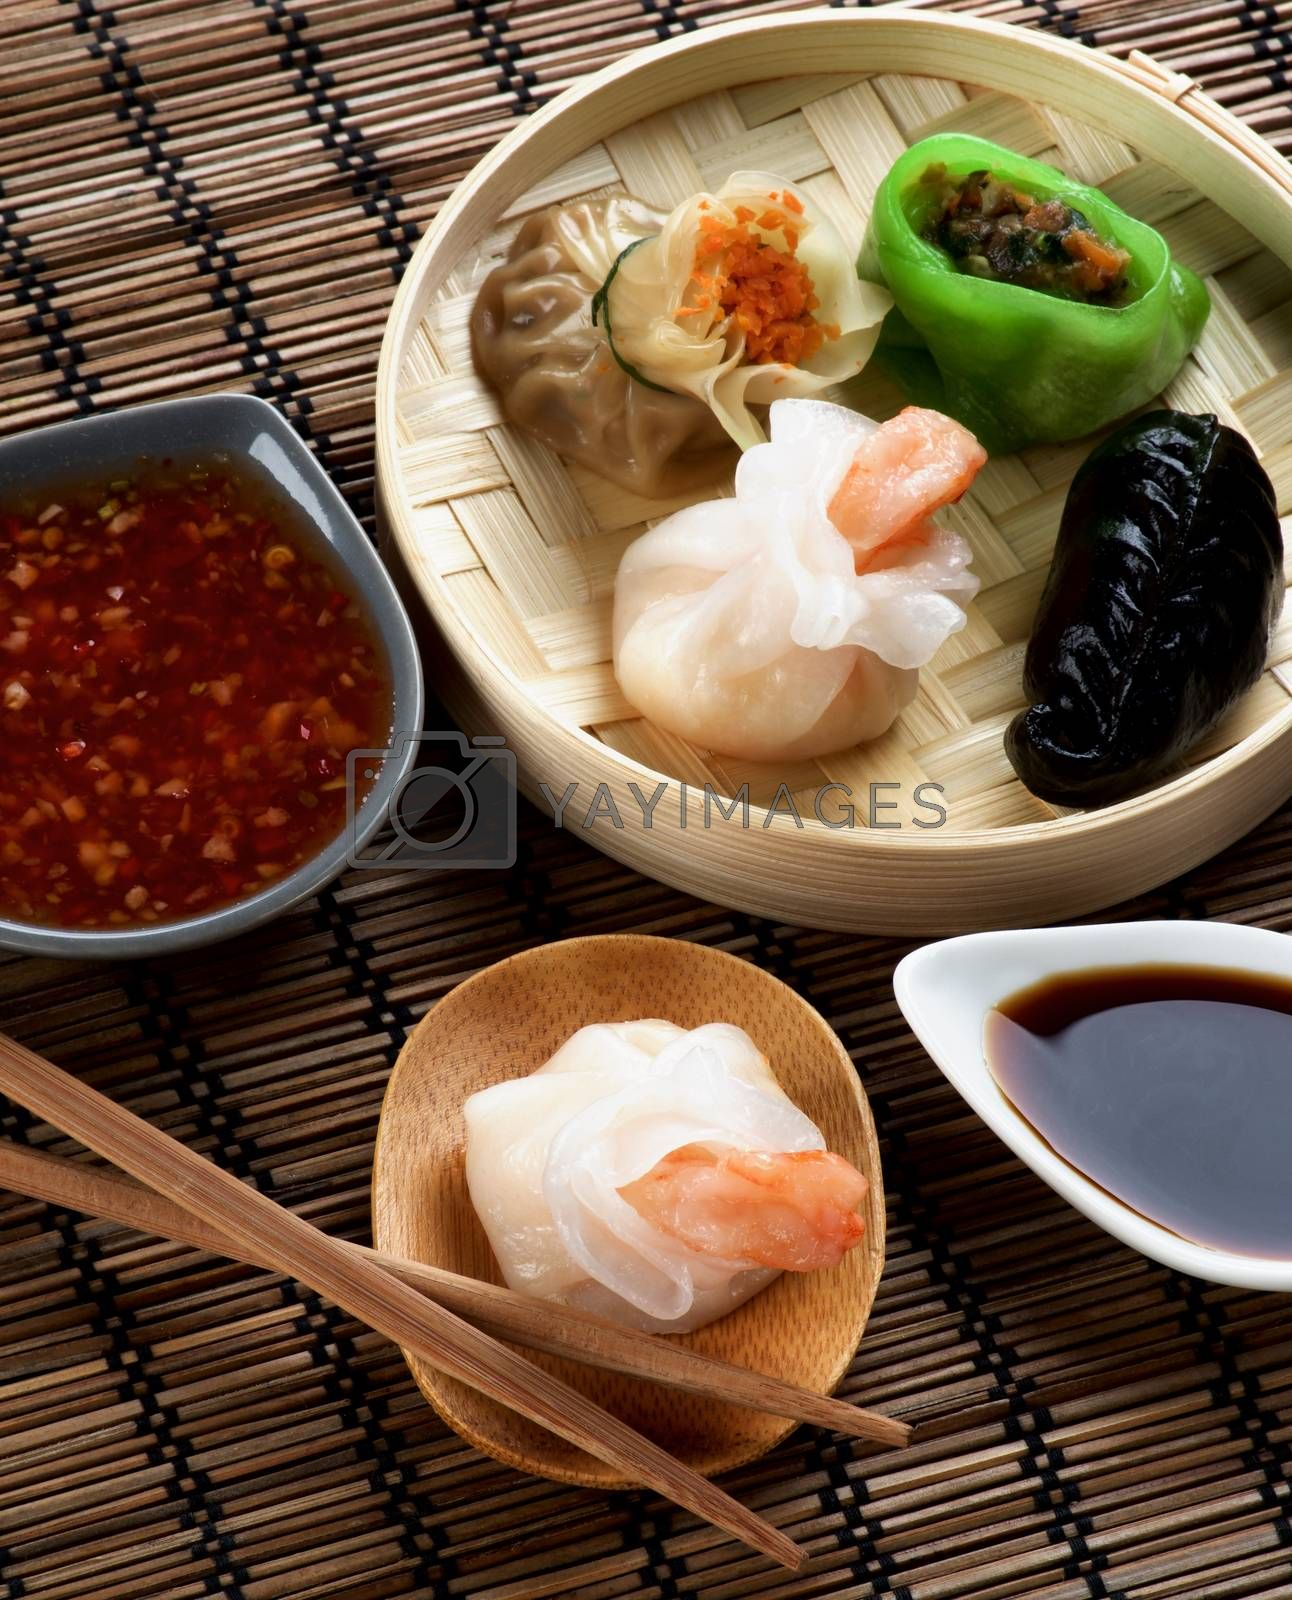 Assorted Dim Sum in Bamboo Steamed Bowl and Tori with Shrimp on Wooden Plate with Red Chili and Soy Sauces and Chopsticks closeup on Straw Mat background